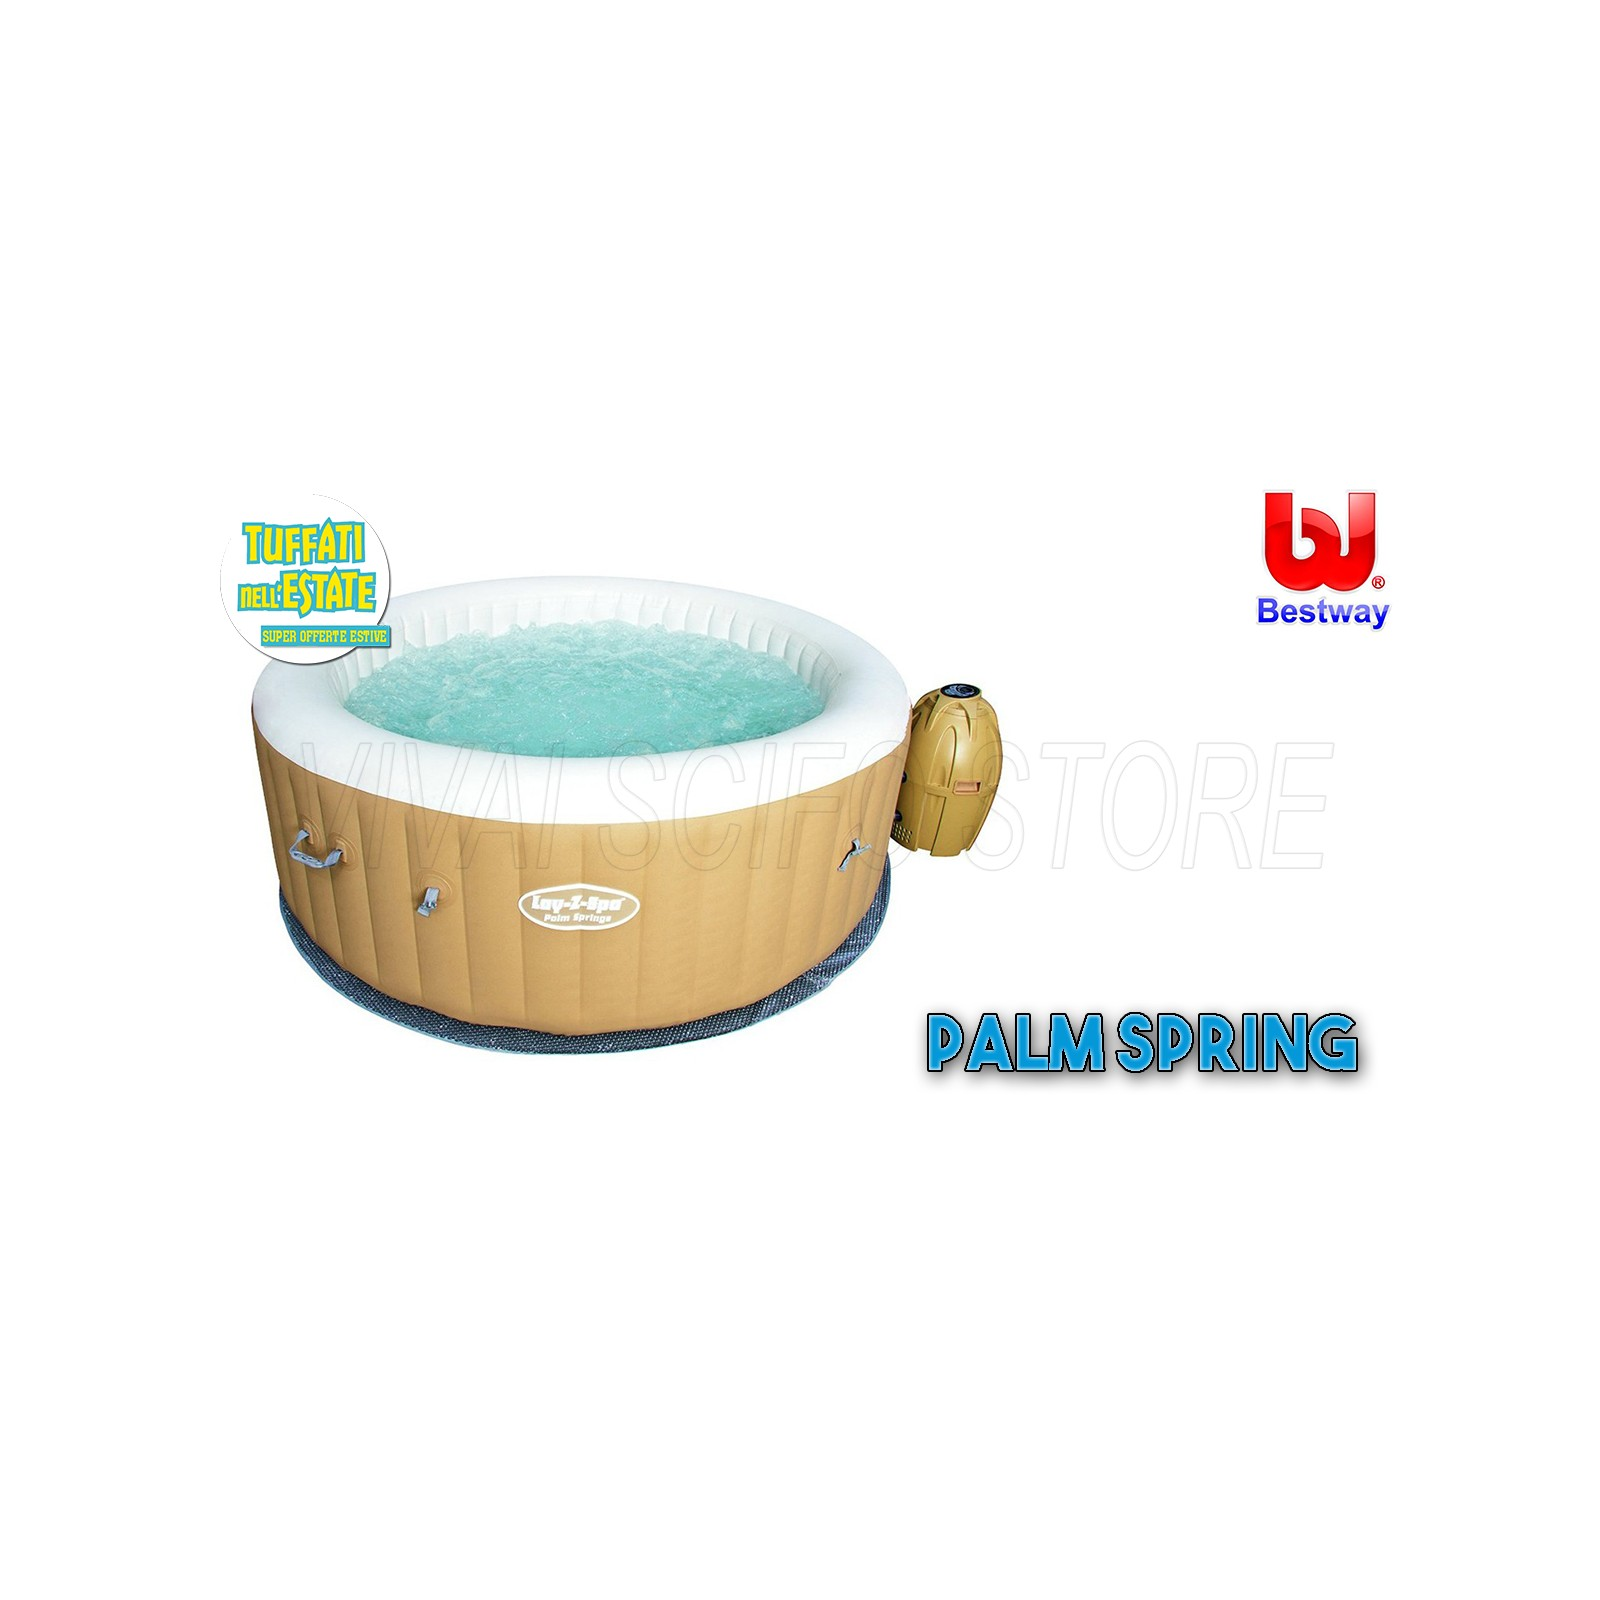 Acquista online piscina idromassaggio bestway palm springs for Piscine on line